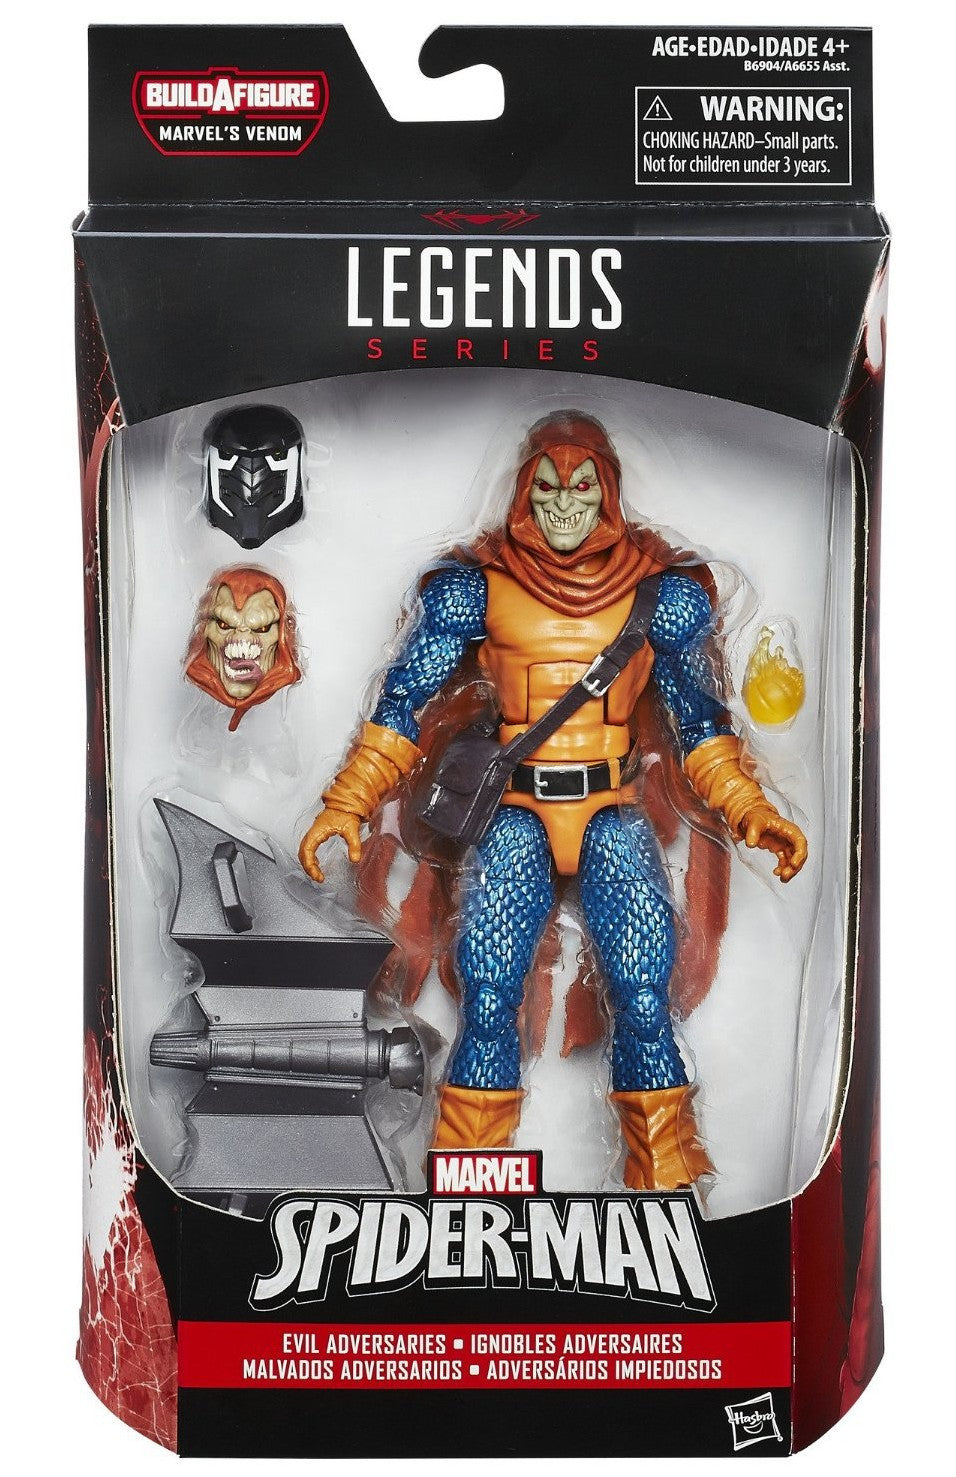 Marvel Legends - Marvel's Venom BAF - Spider-Man - Evil Adversaries - Hobgoblin (B6904)